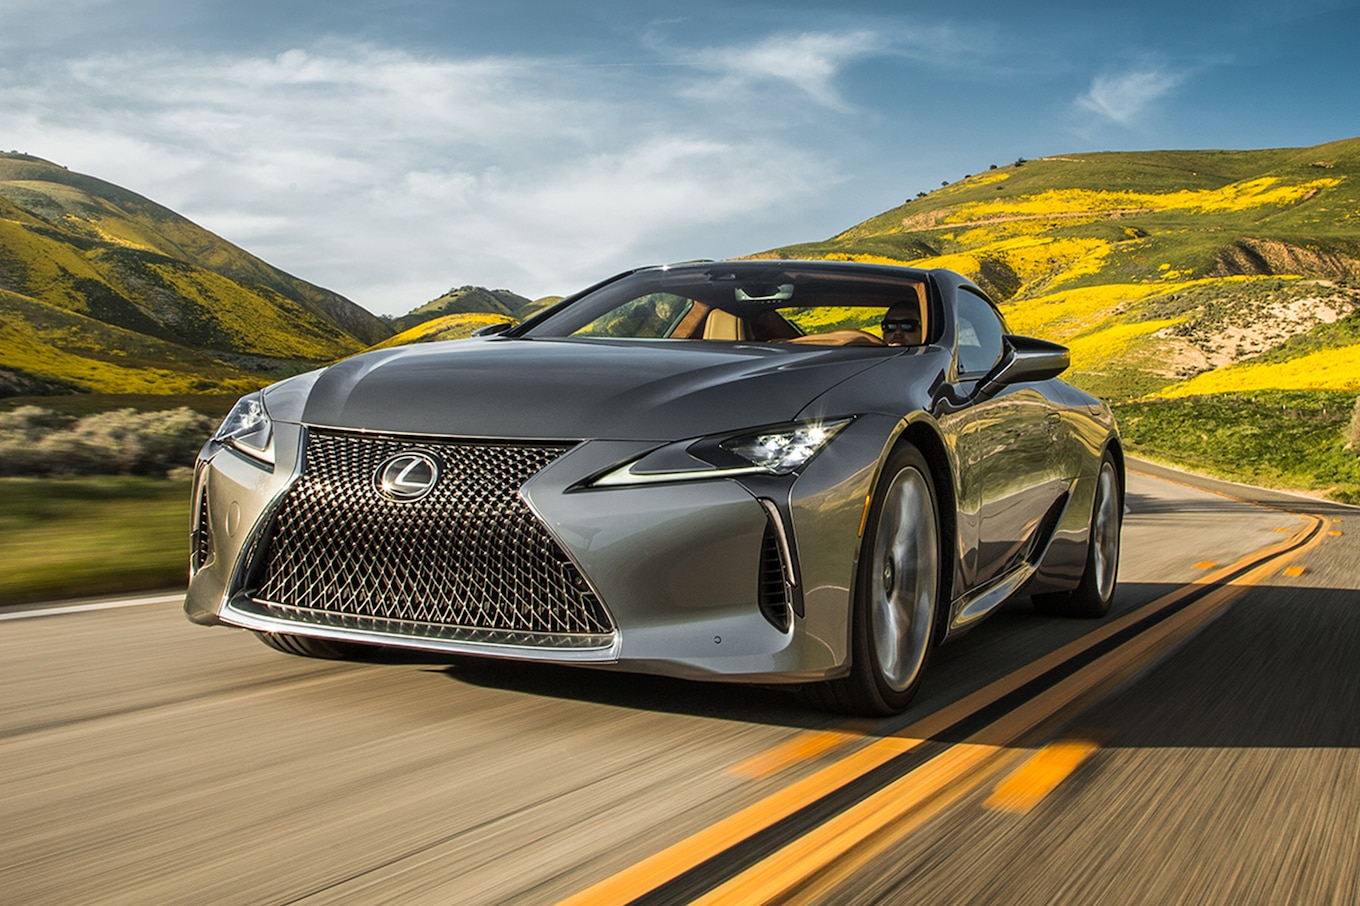 2018 lexus lc 500 and lc 500h first test [ 1185 x 790 Pixel ]